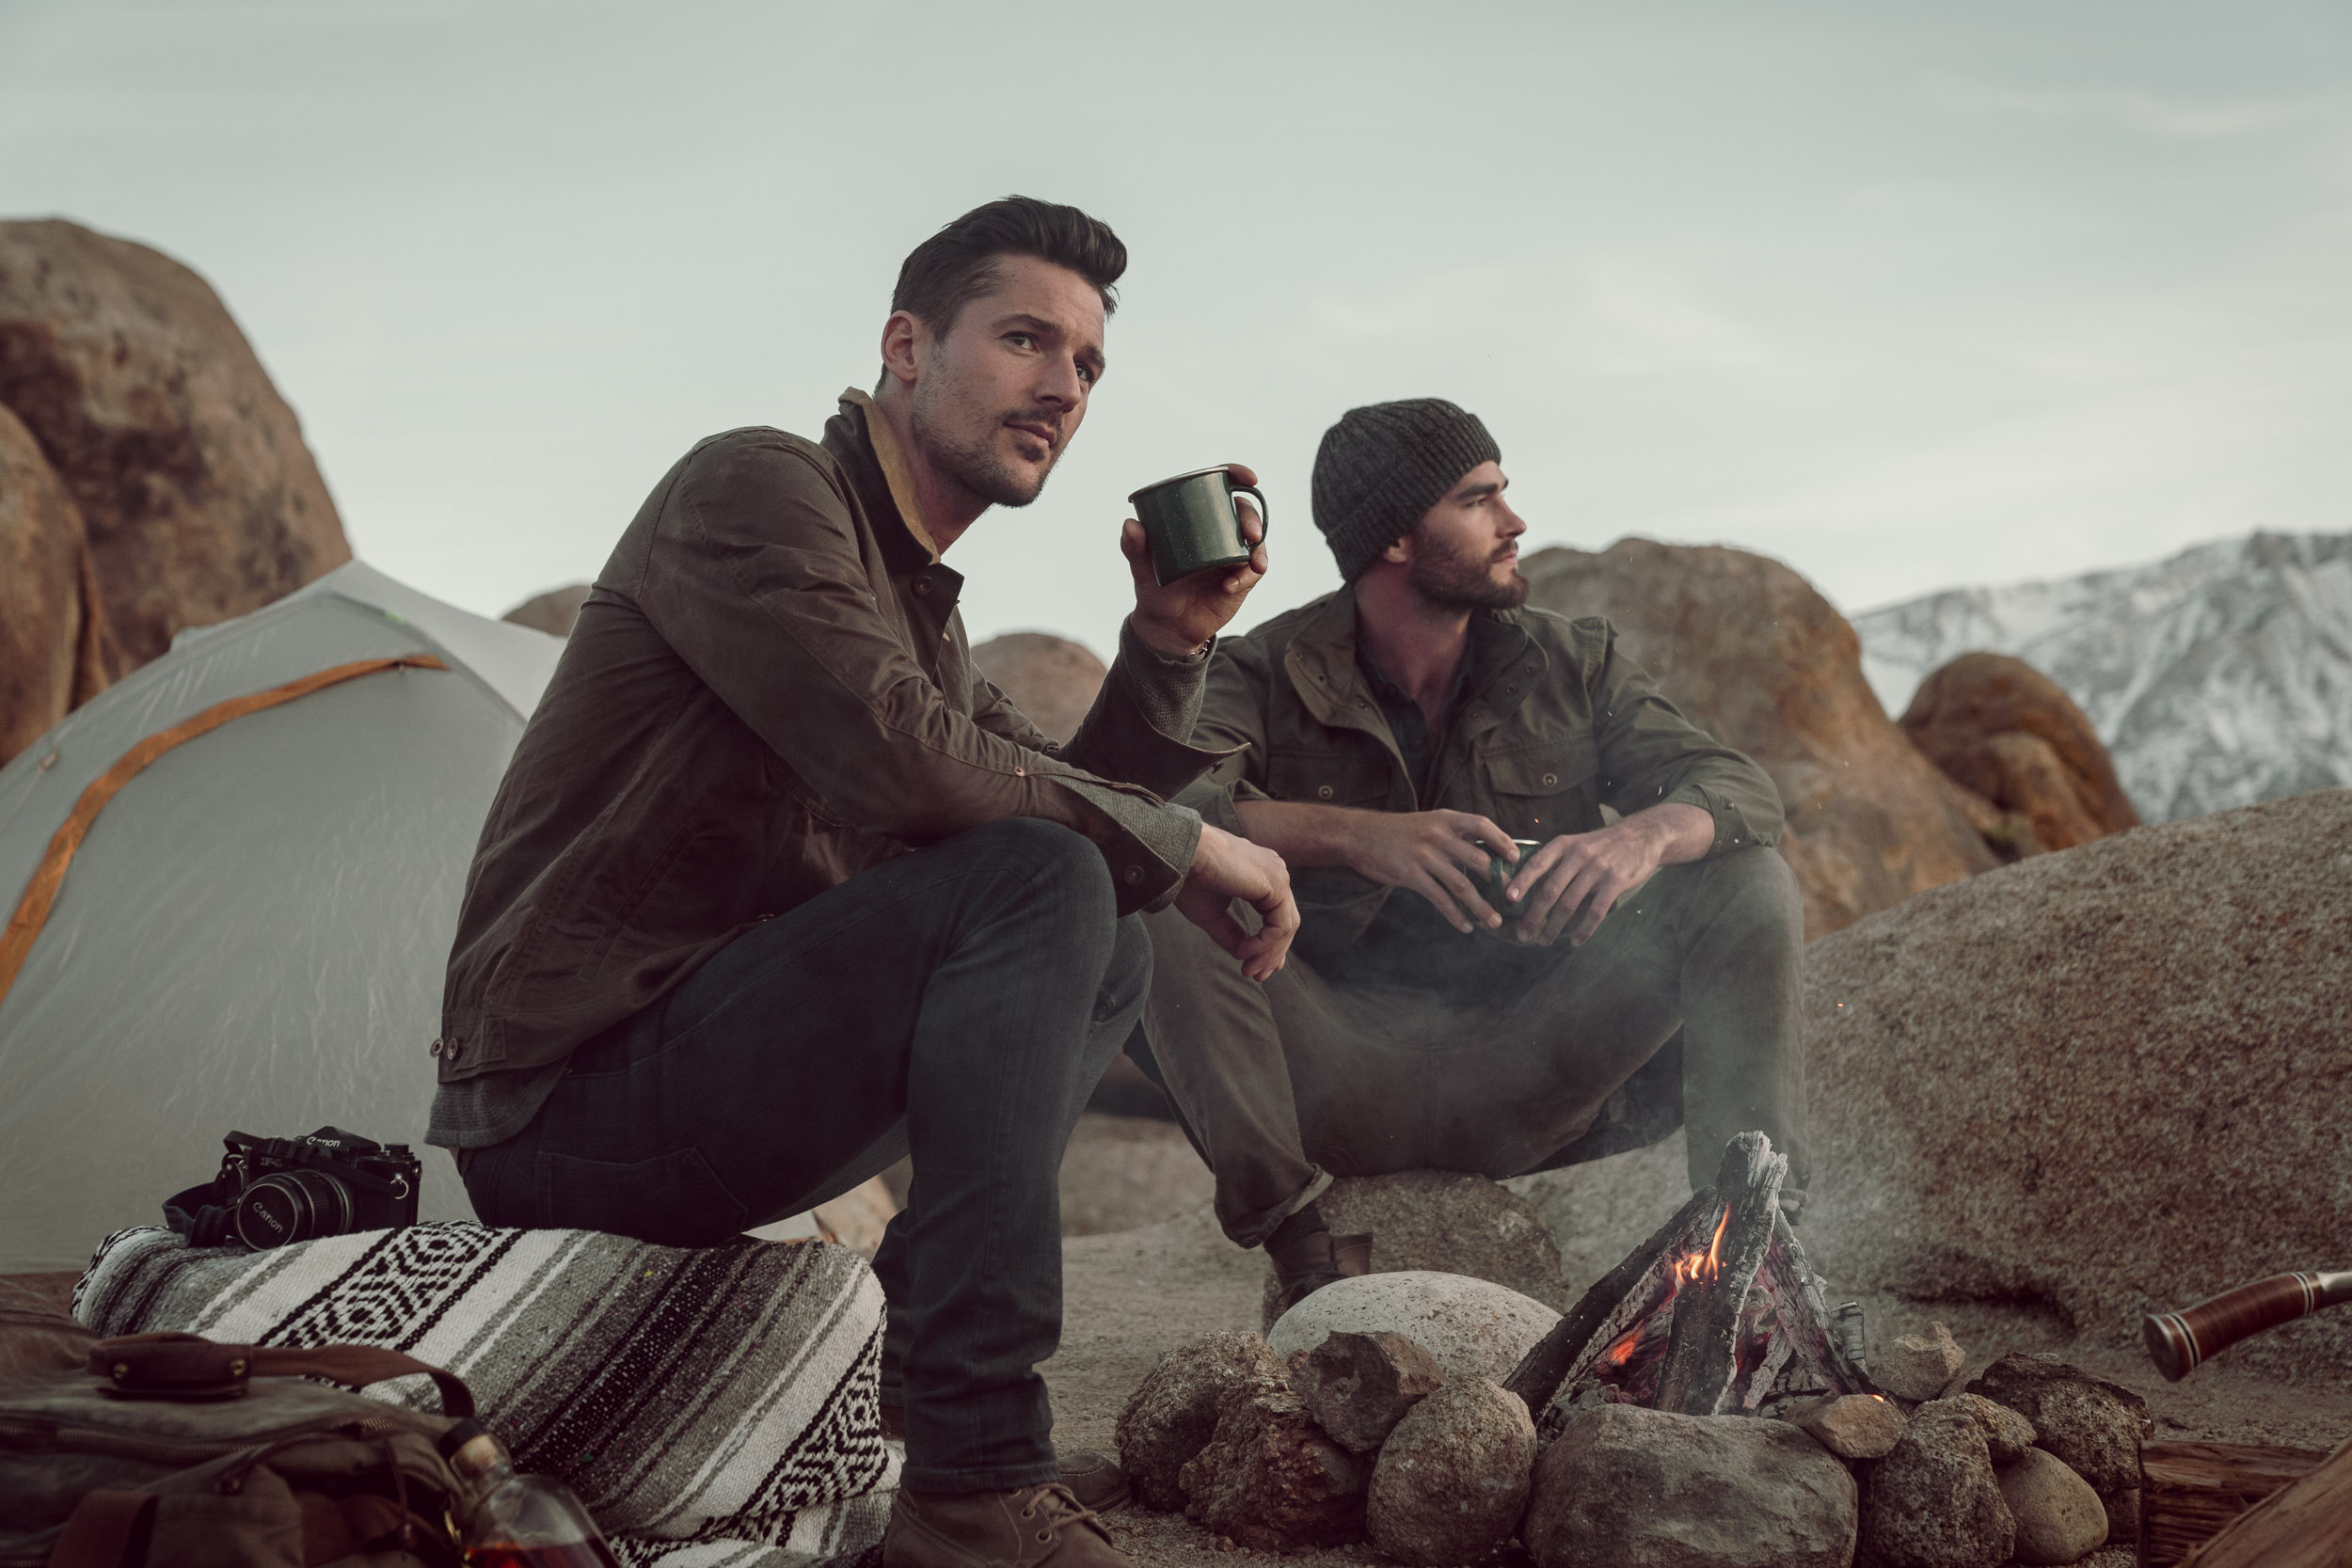 Two rugged outdoorsmen enjoying a drink by the fire at twilight.